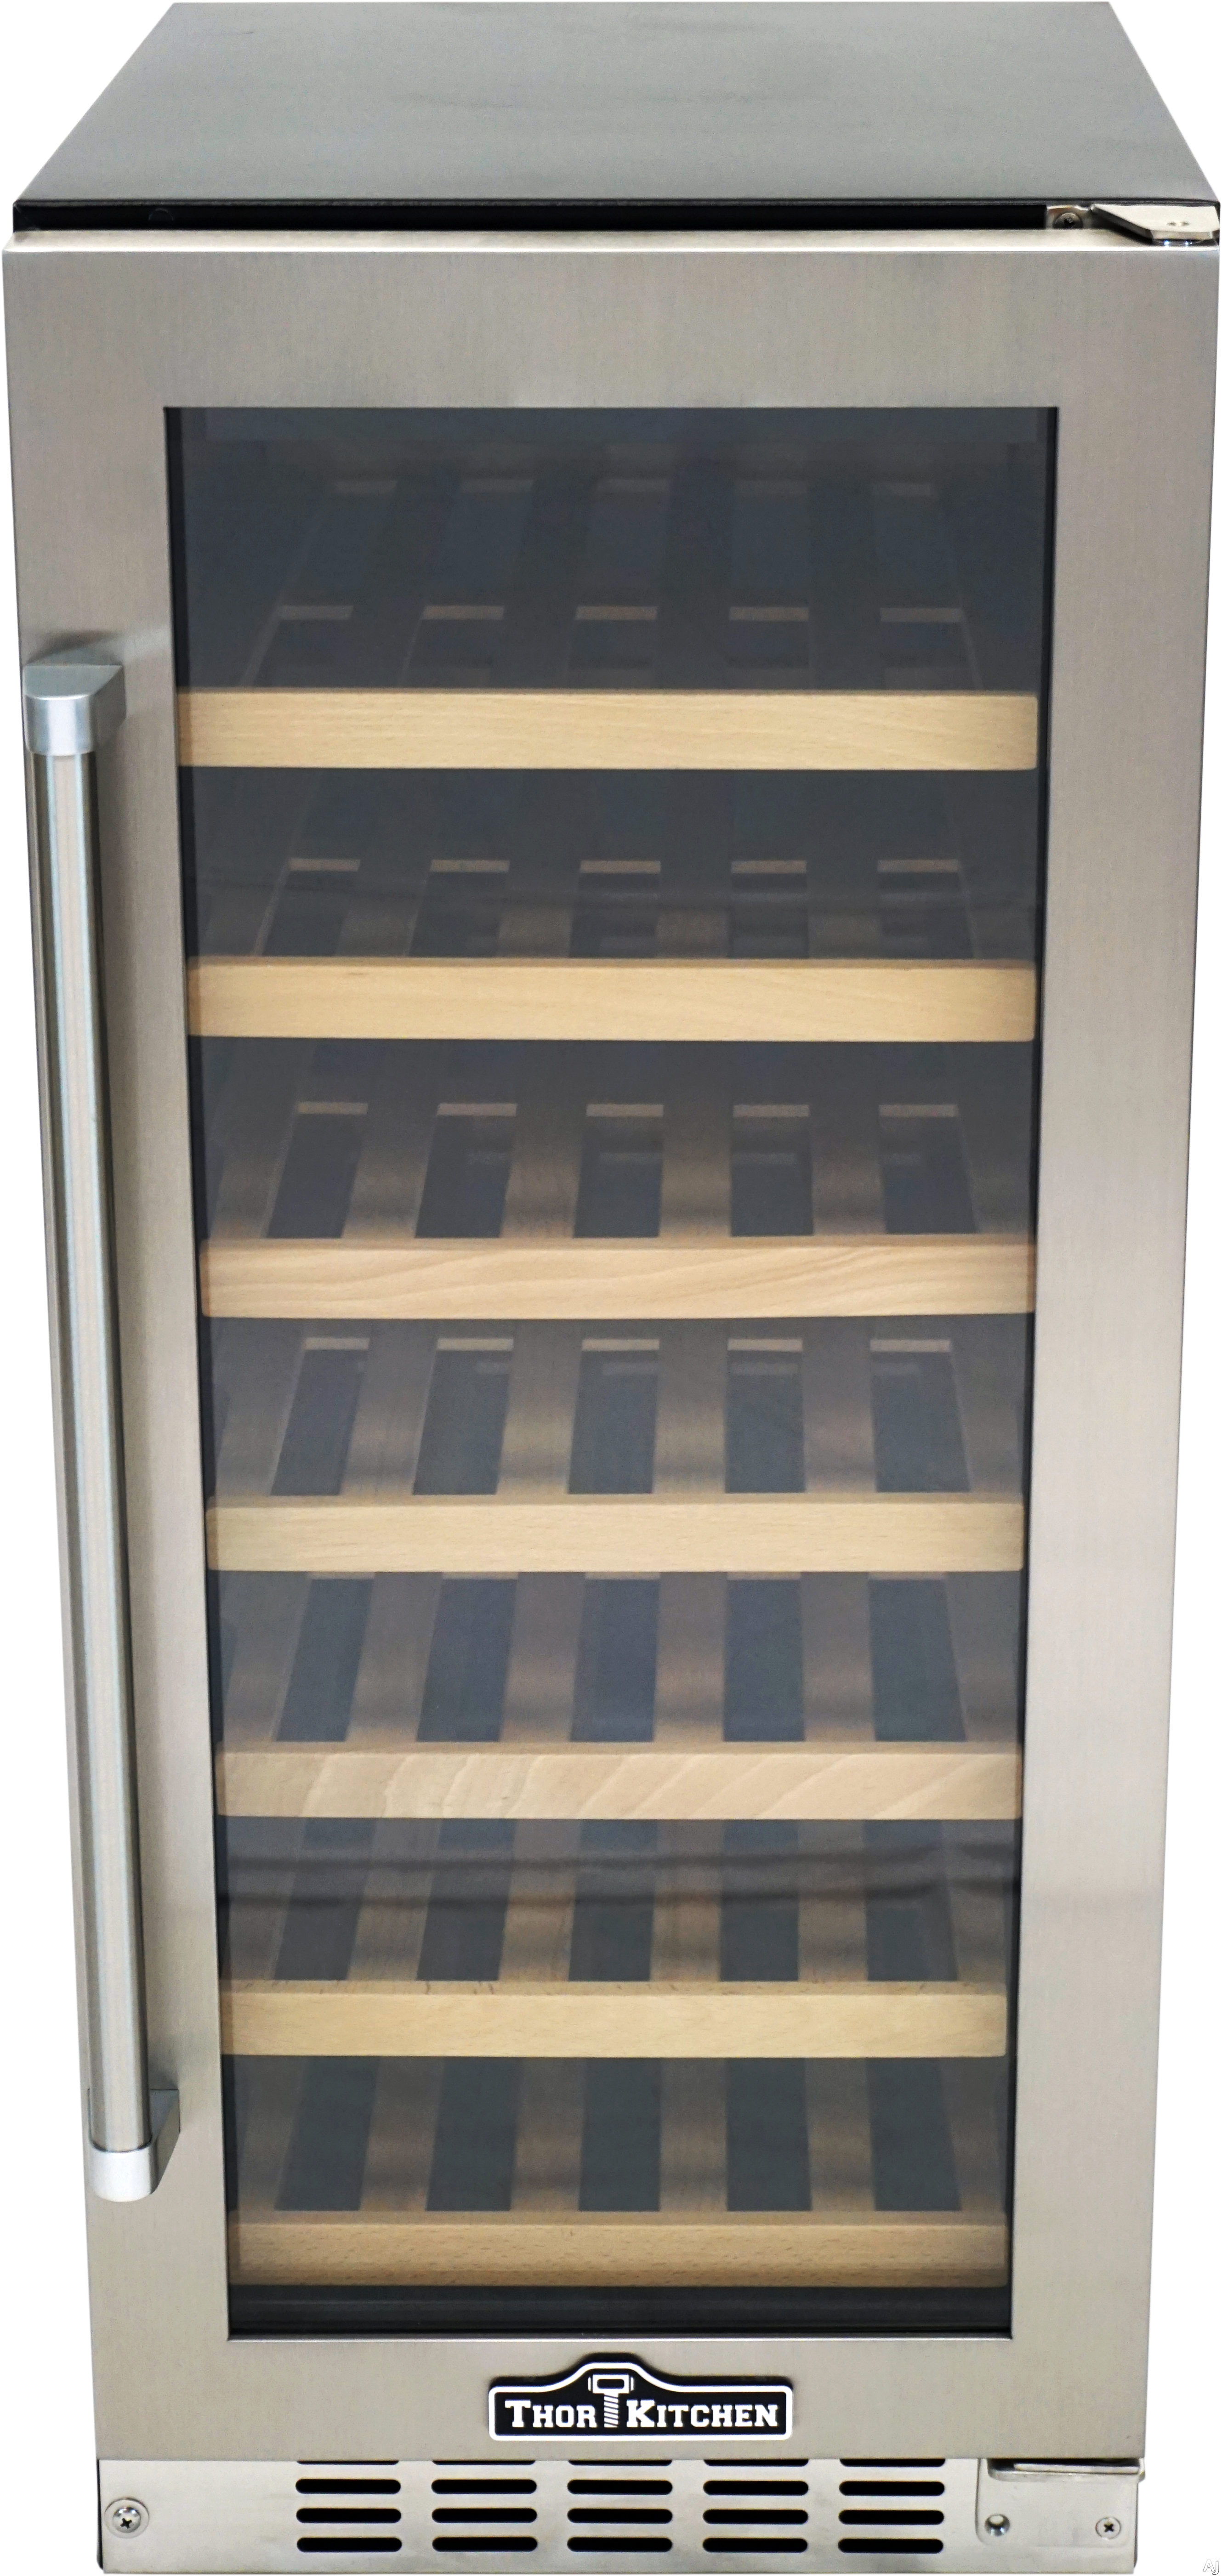 Thor Kitchen HWC2407U 15 Inch Built-In/Freestanding Wine Cooler with 33 Bottle Capacity, Compressor Powered Cooling, LED Lighting, No Frost Air Circulation, Double Tempered Glass and Stainless Steel Frame